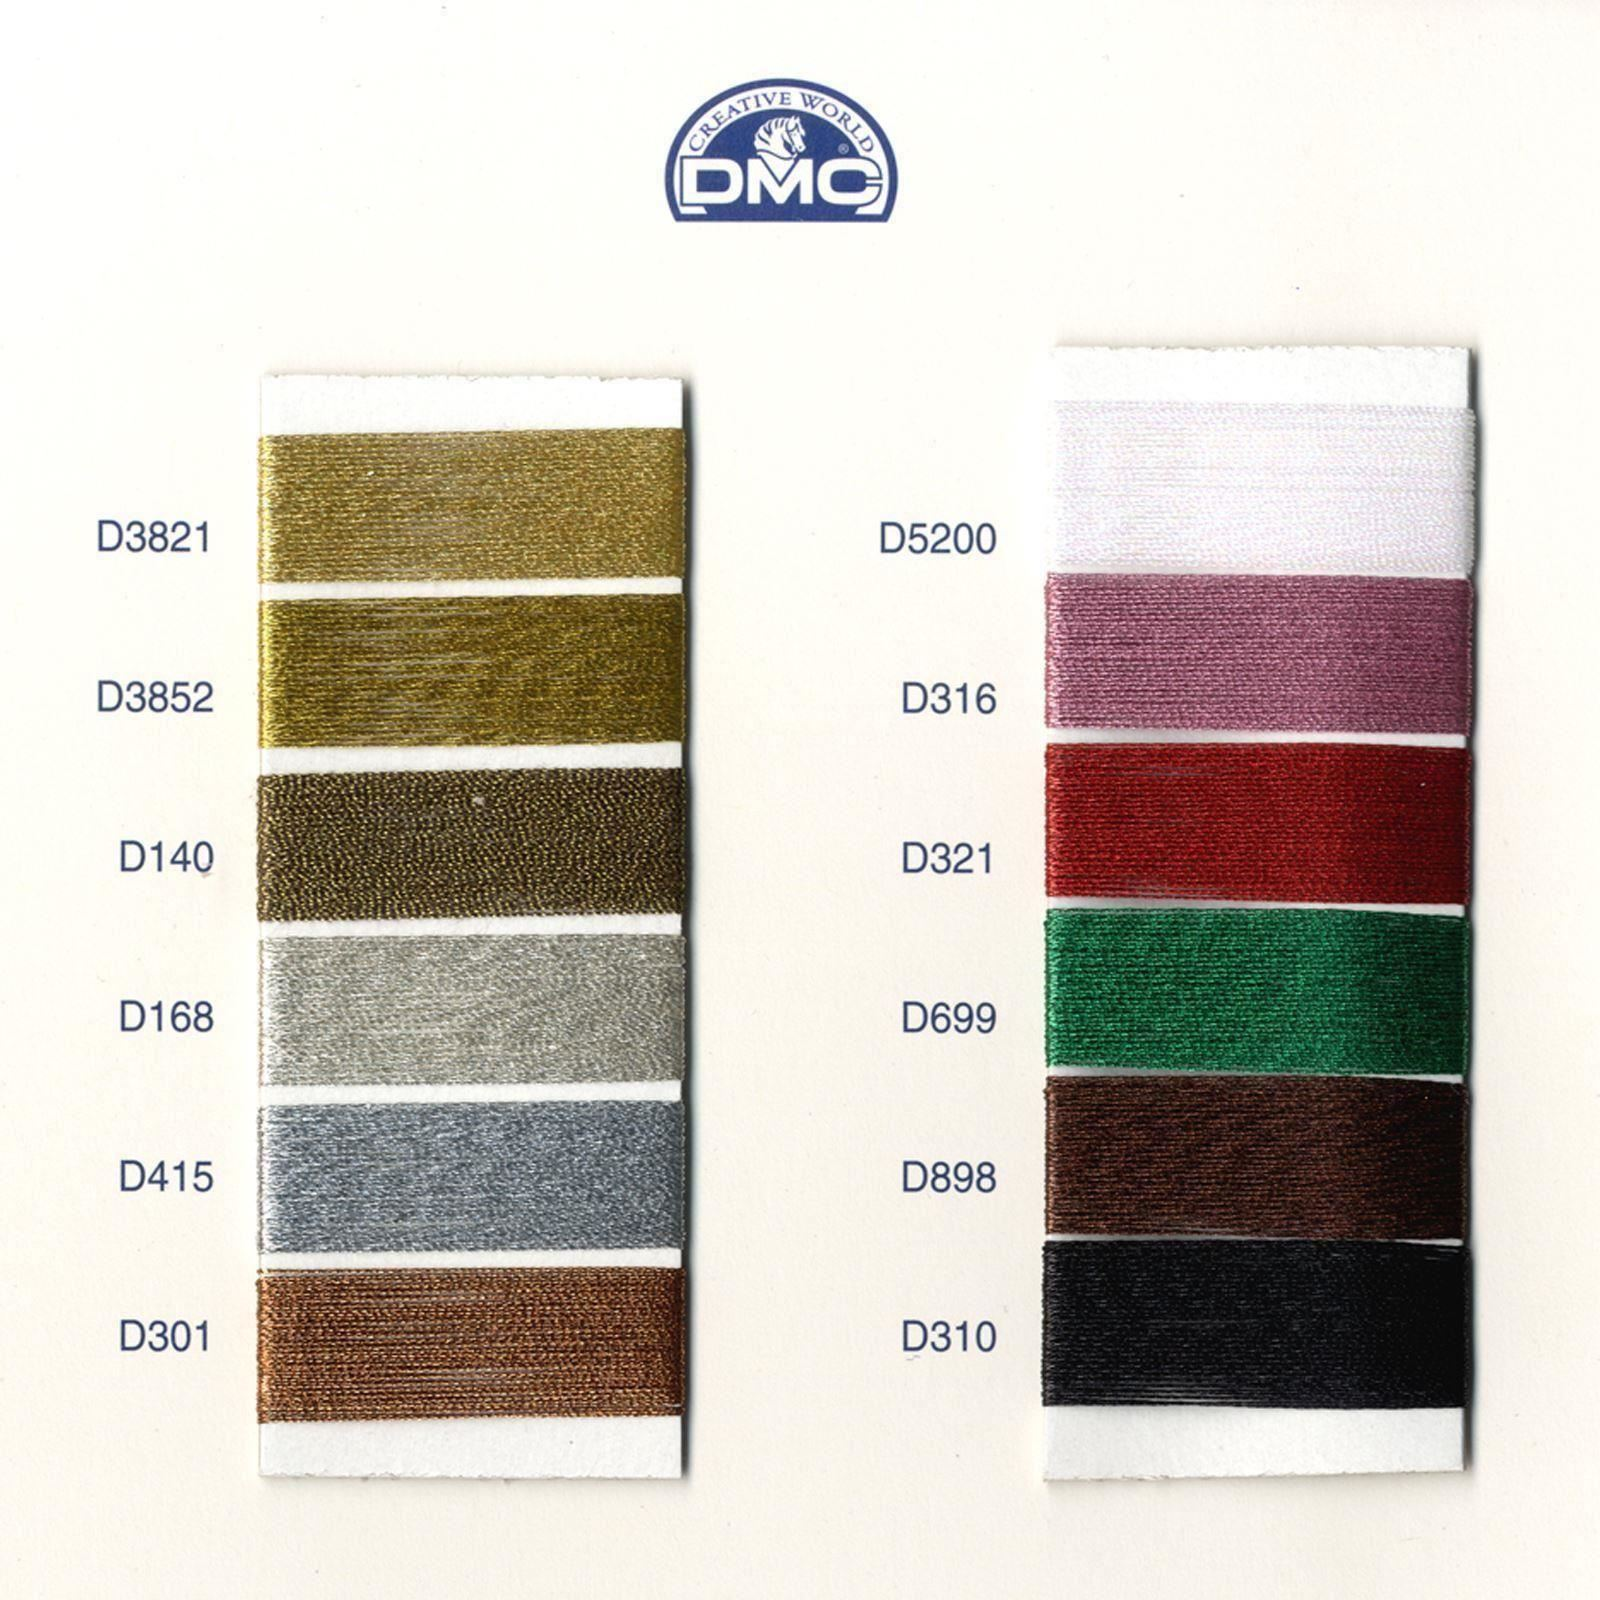 DMC-Diamant-Metallic-Embroidery-Thread-35m-Spool-Cross-Stitch thumbnail 18